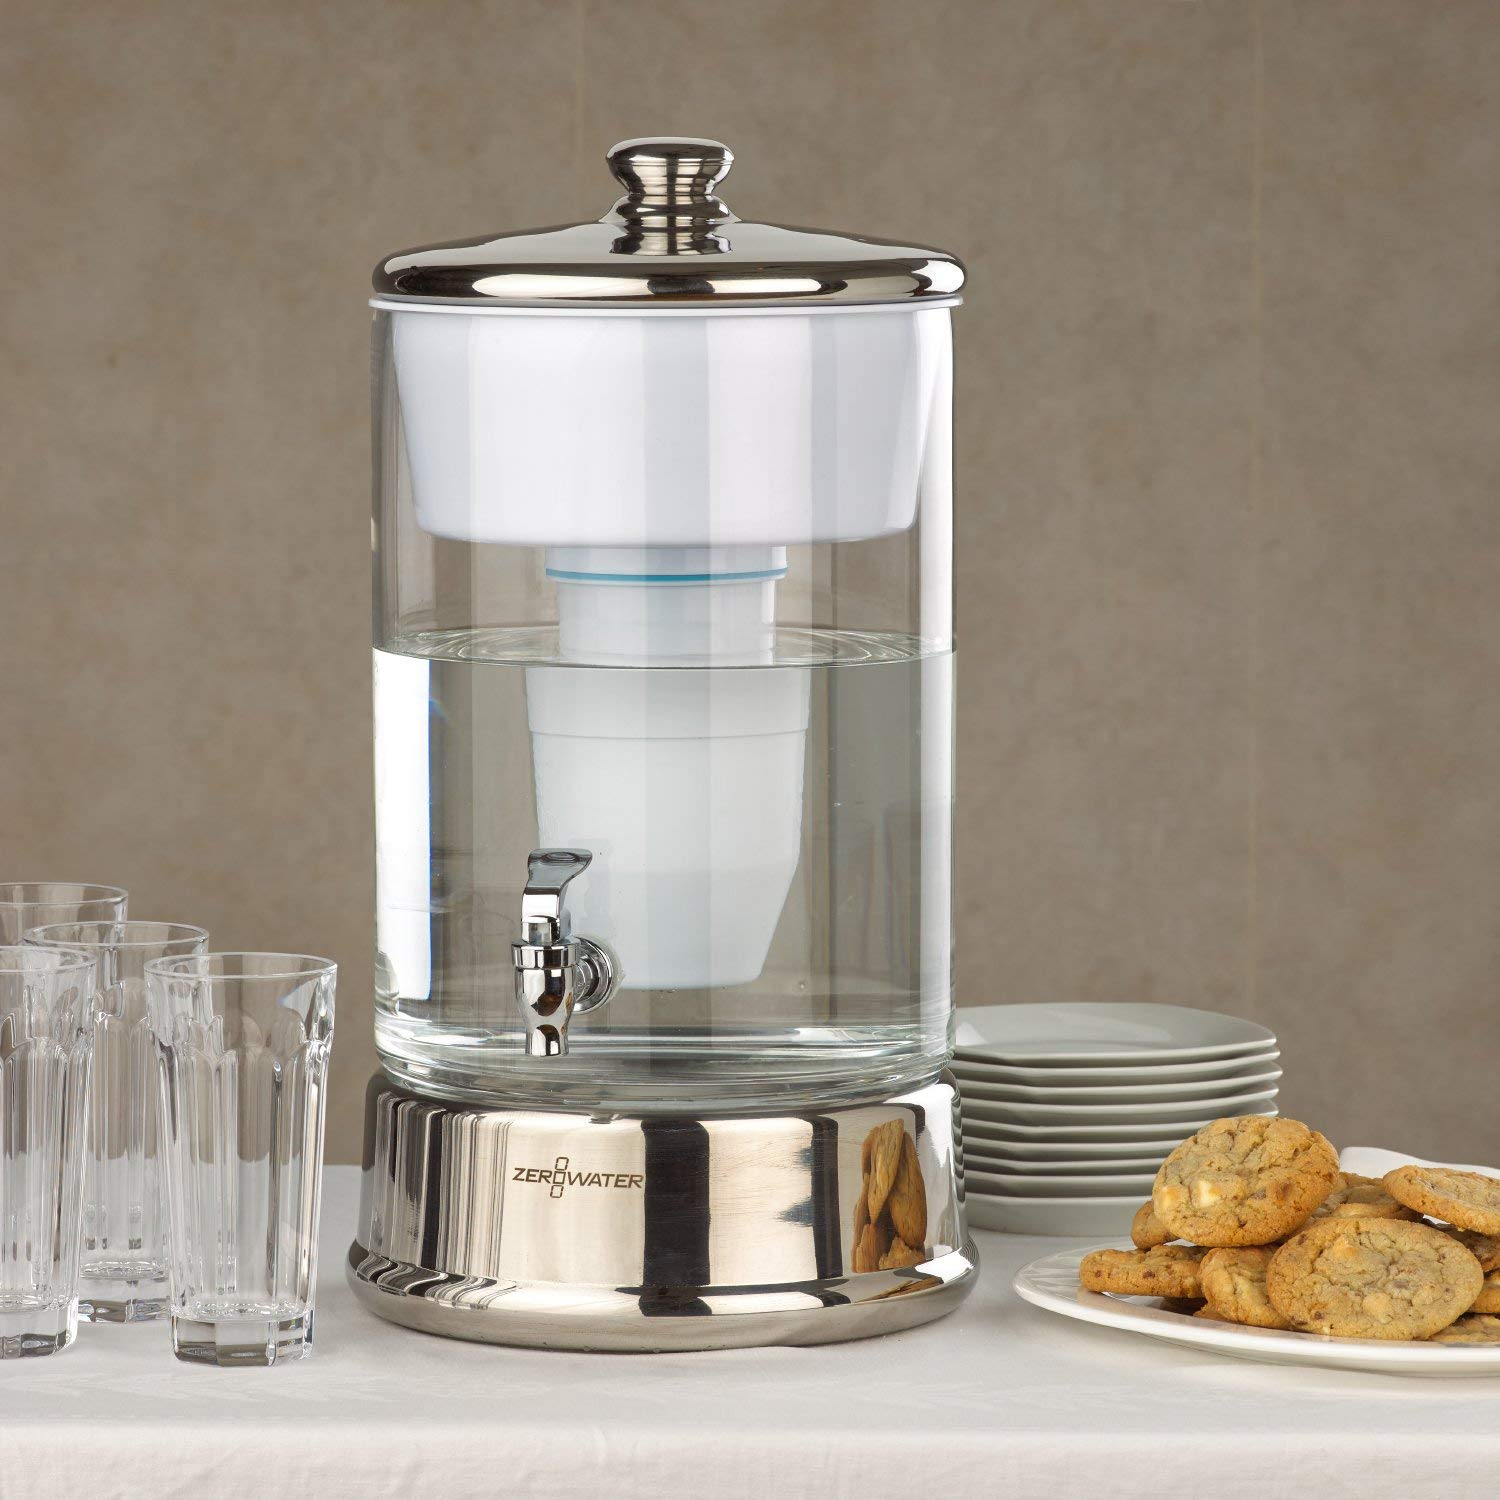 ZeroWater (ZBD-040-1) 40 Cup Ready-Pour Glass Dispenser, BPA-Free, with Free Water Quality Meter, NSF Certified to Reduce Lead and Other Heavy Metals by ZeroWater